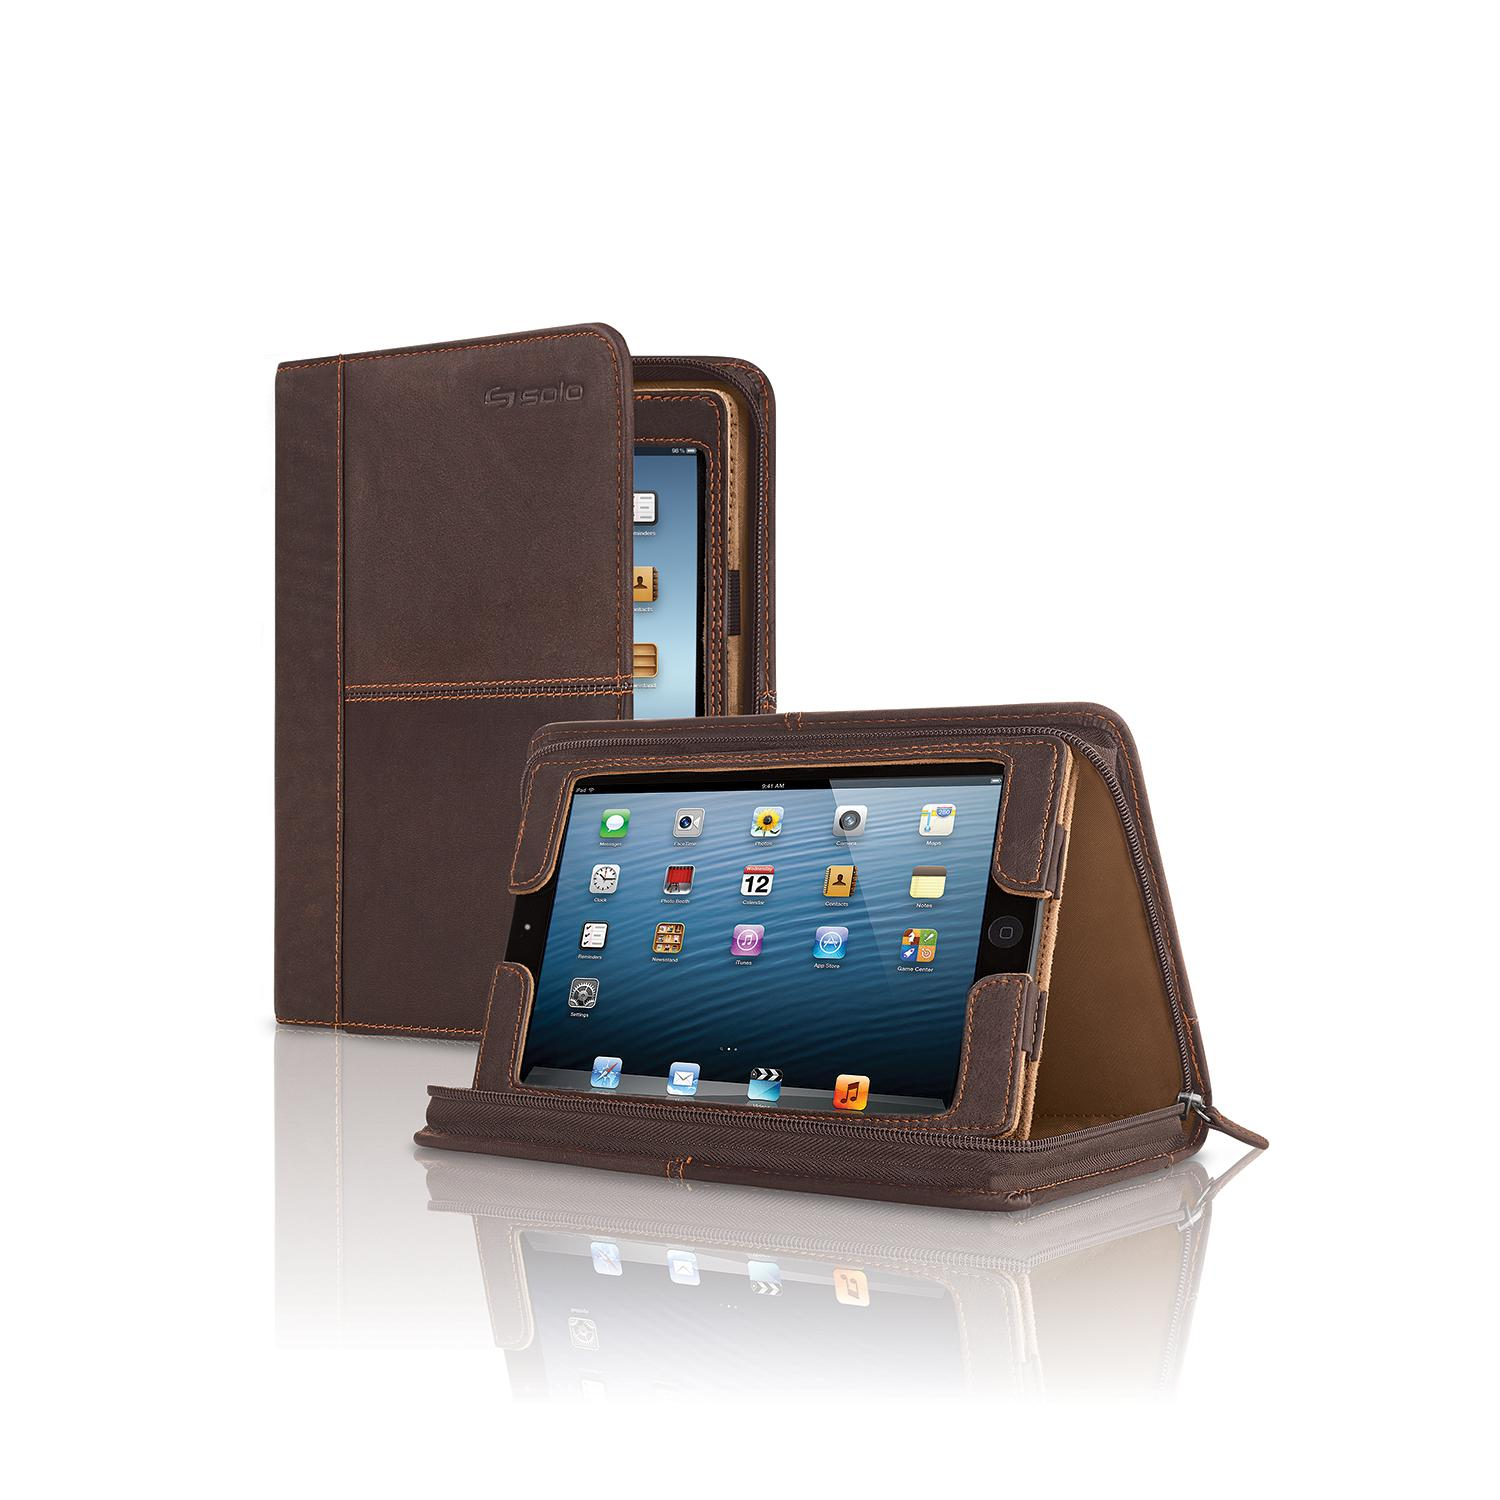 Amazon.com: Solo Premiere Leather Universal Tablet Case, 8 ...